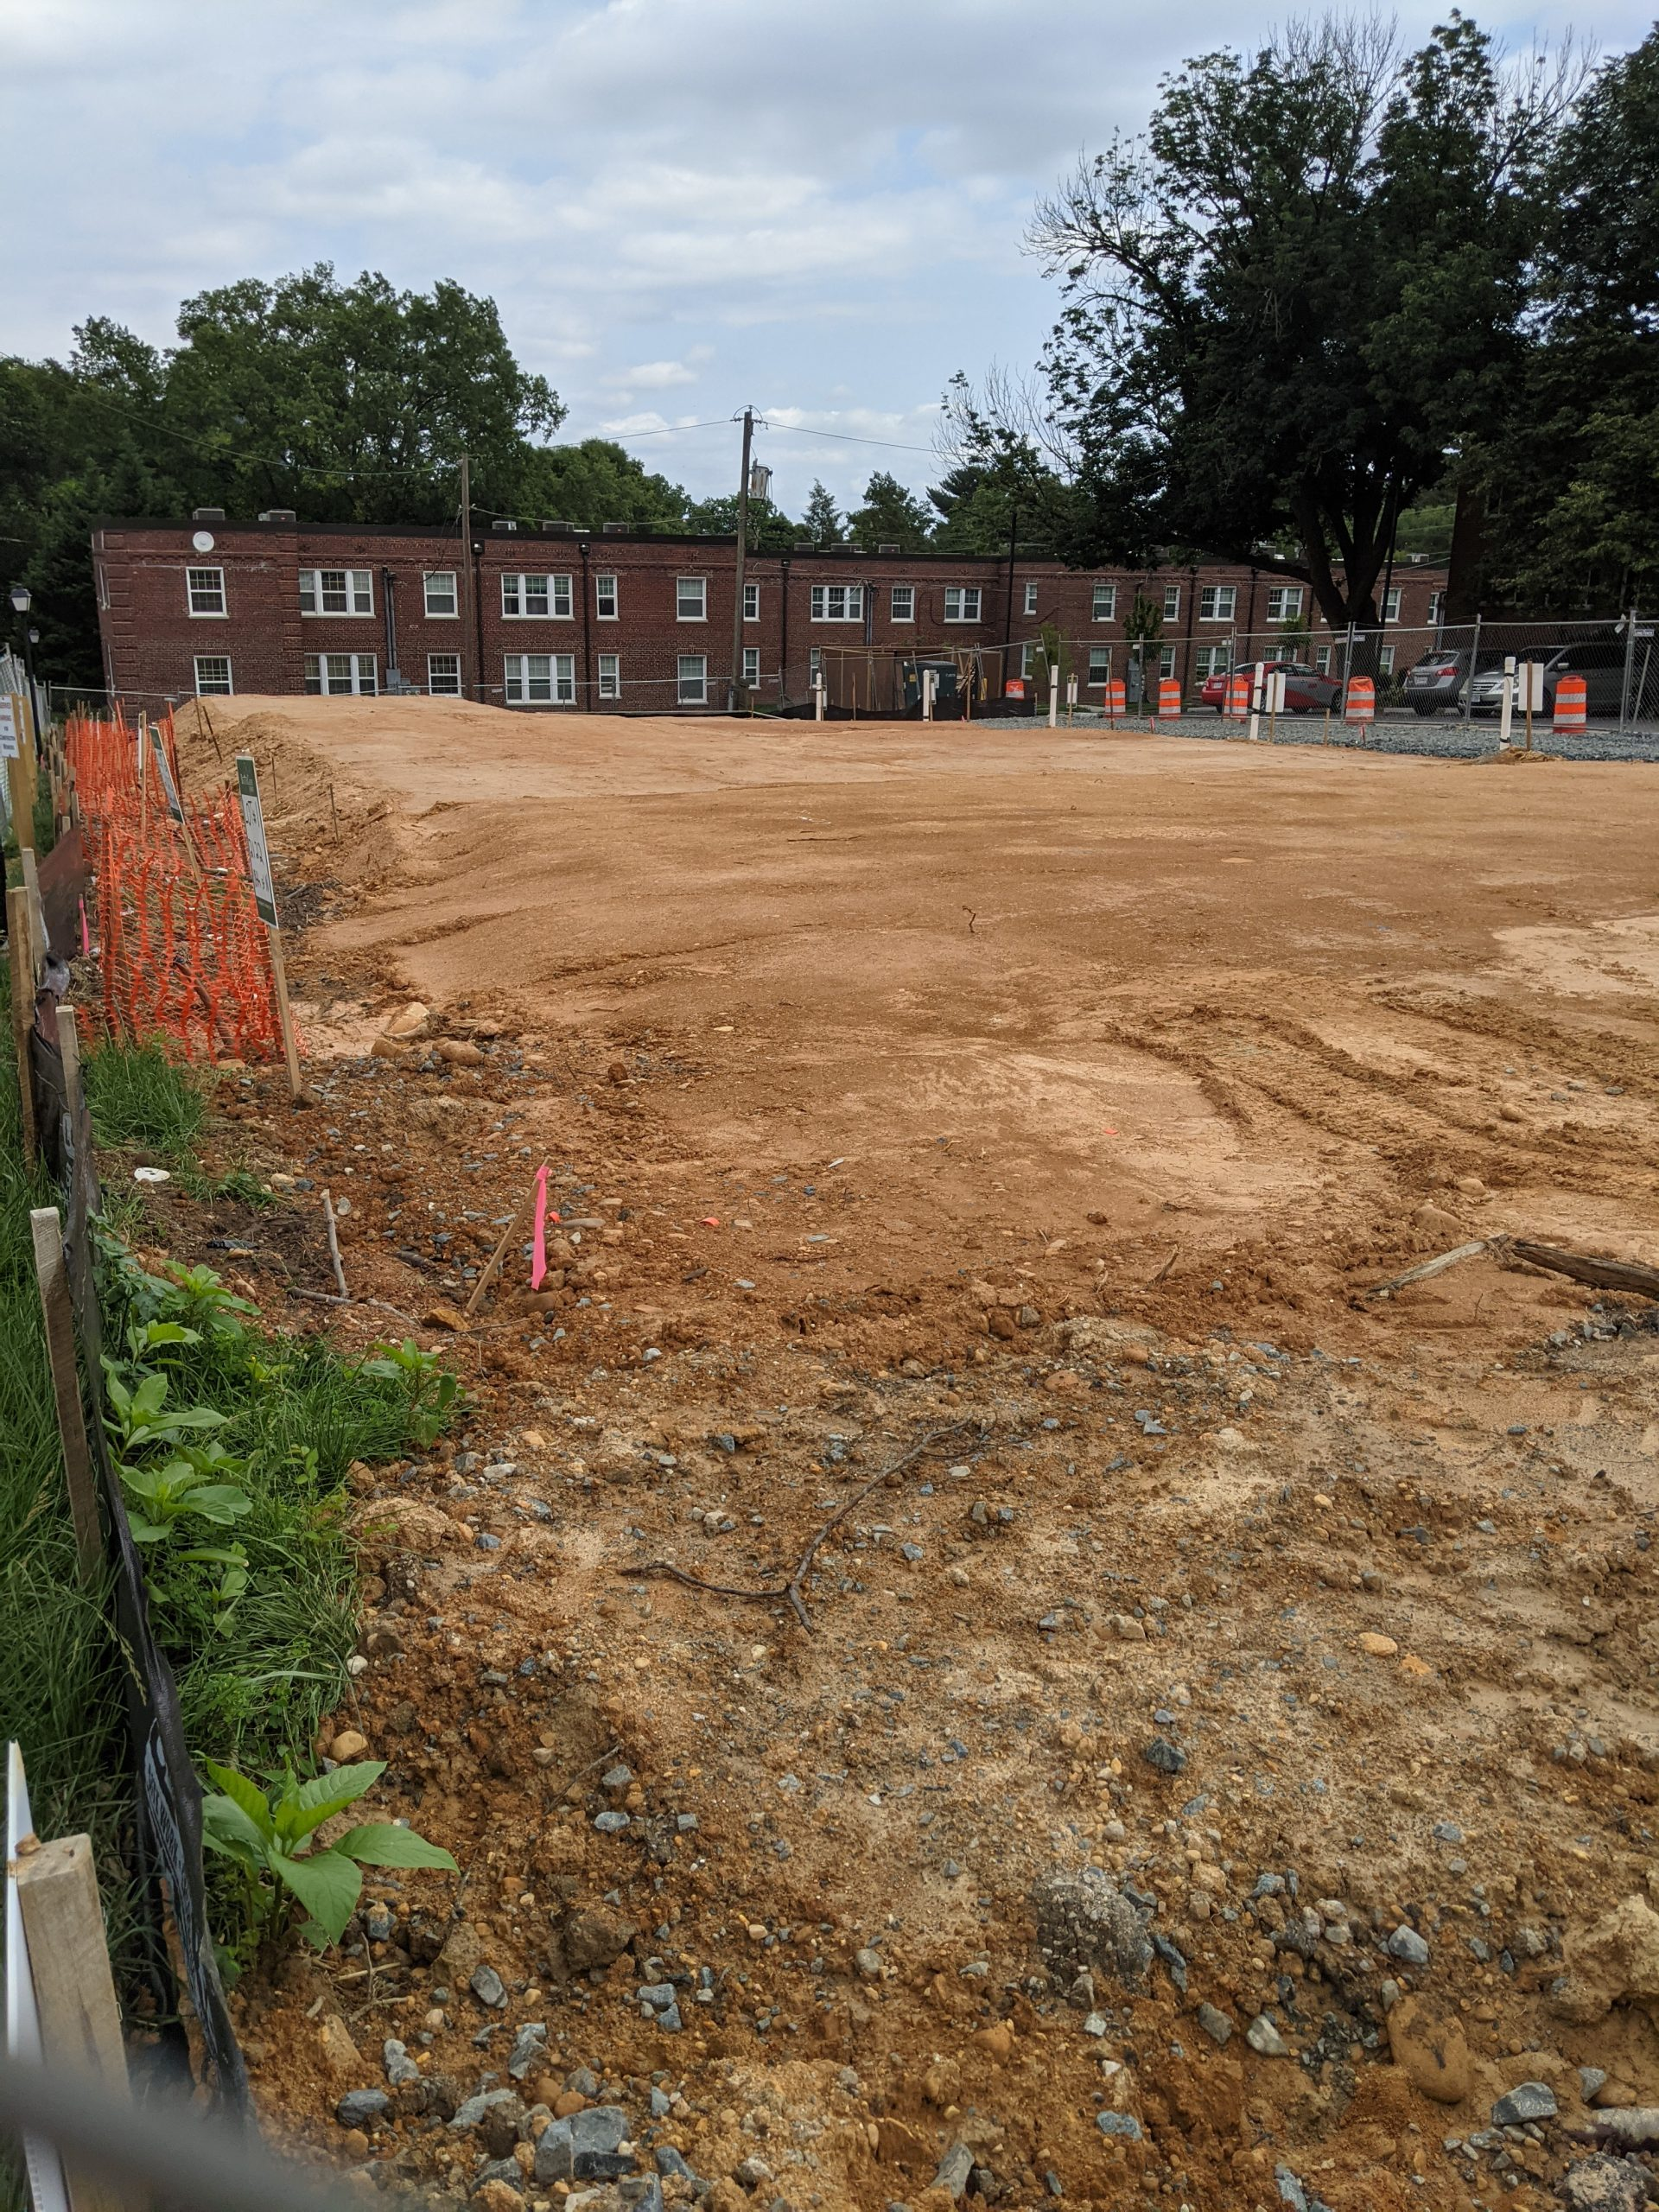 A large patch of dirt in front of a brick building.